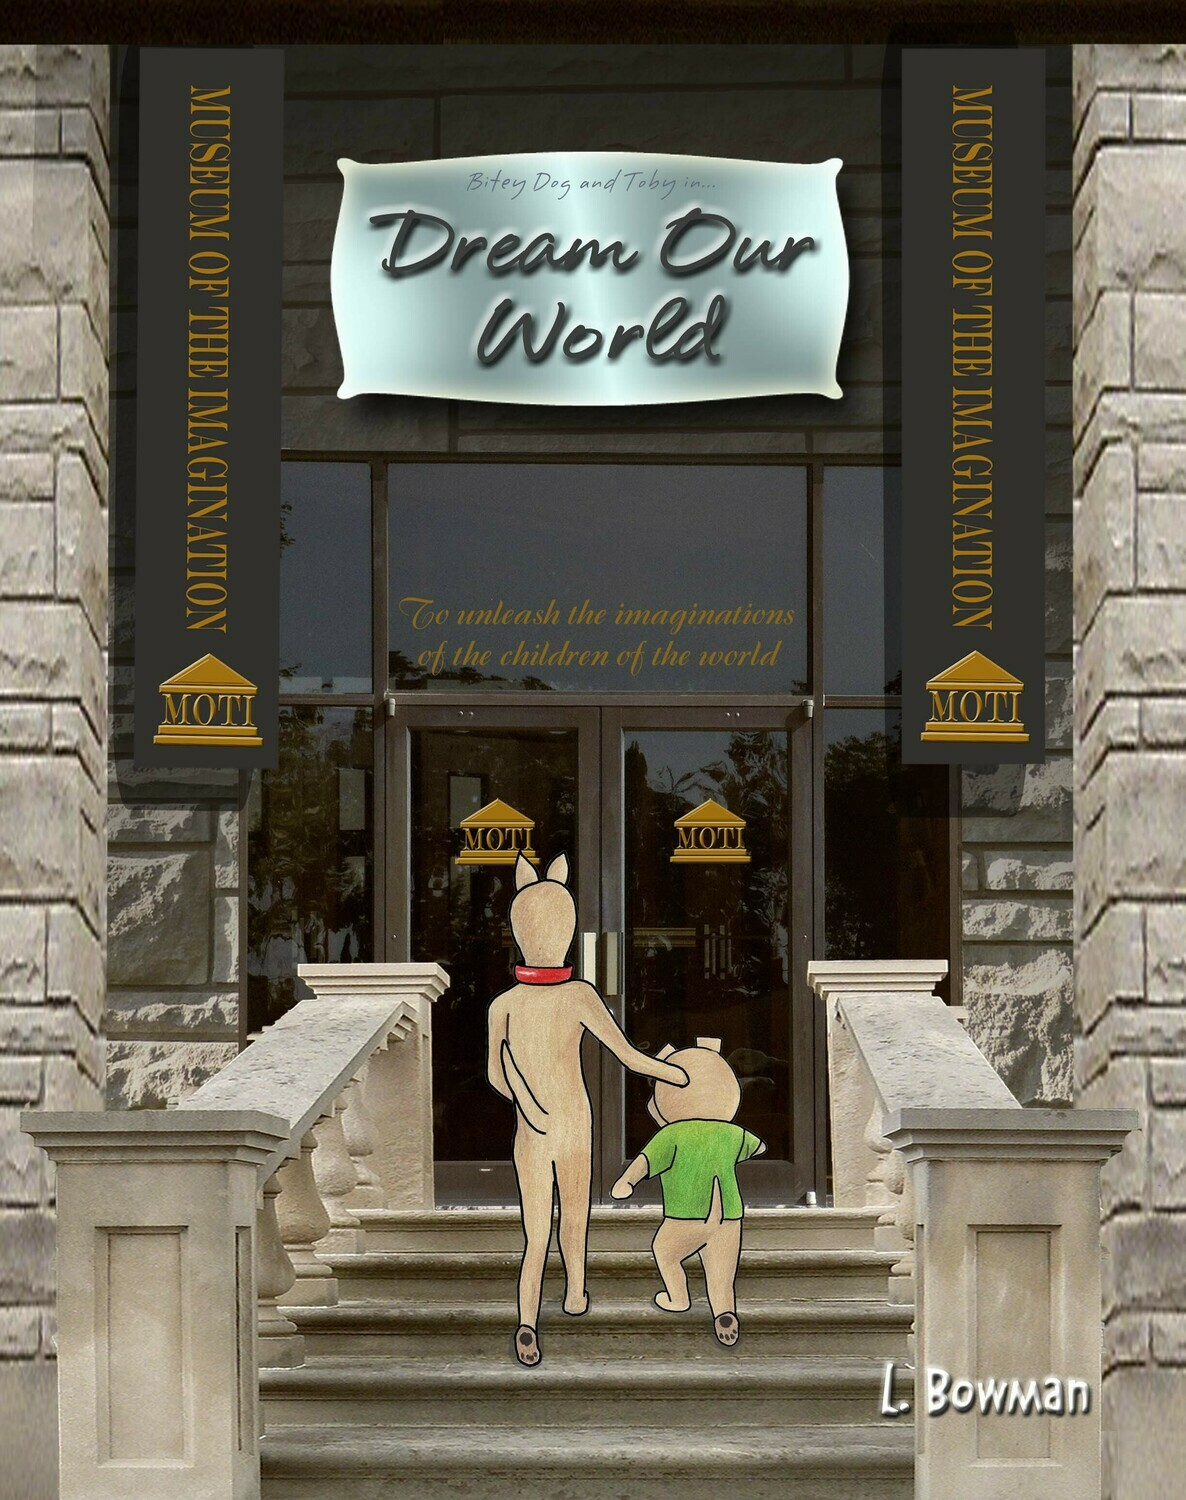 Dream Our World